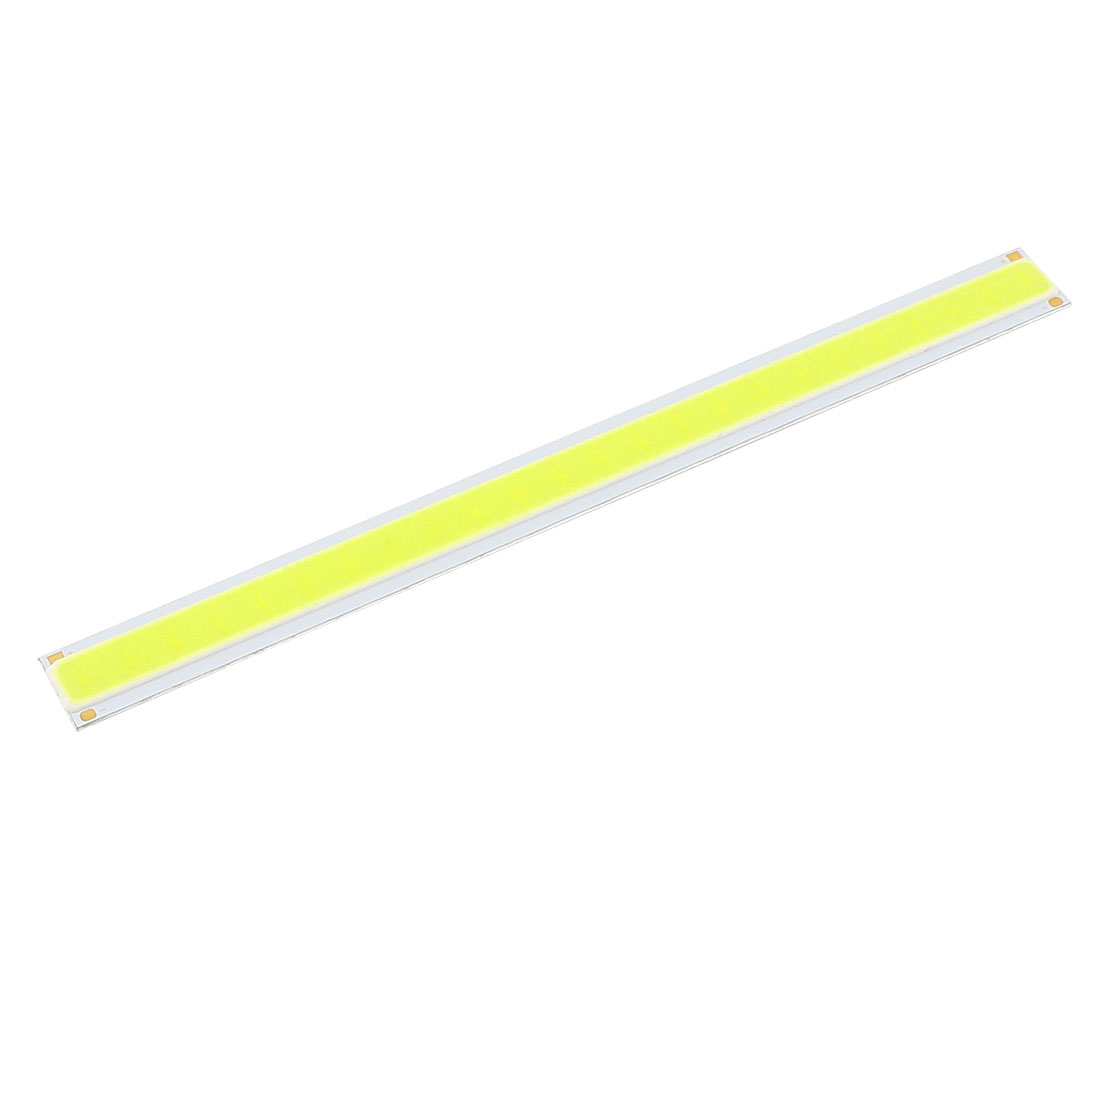 12W DC12-14V 300mA 80-90LM/W White LED Light COB Lamp Bead Chip 150mm Long